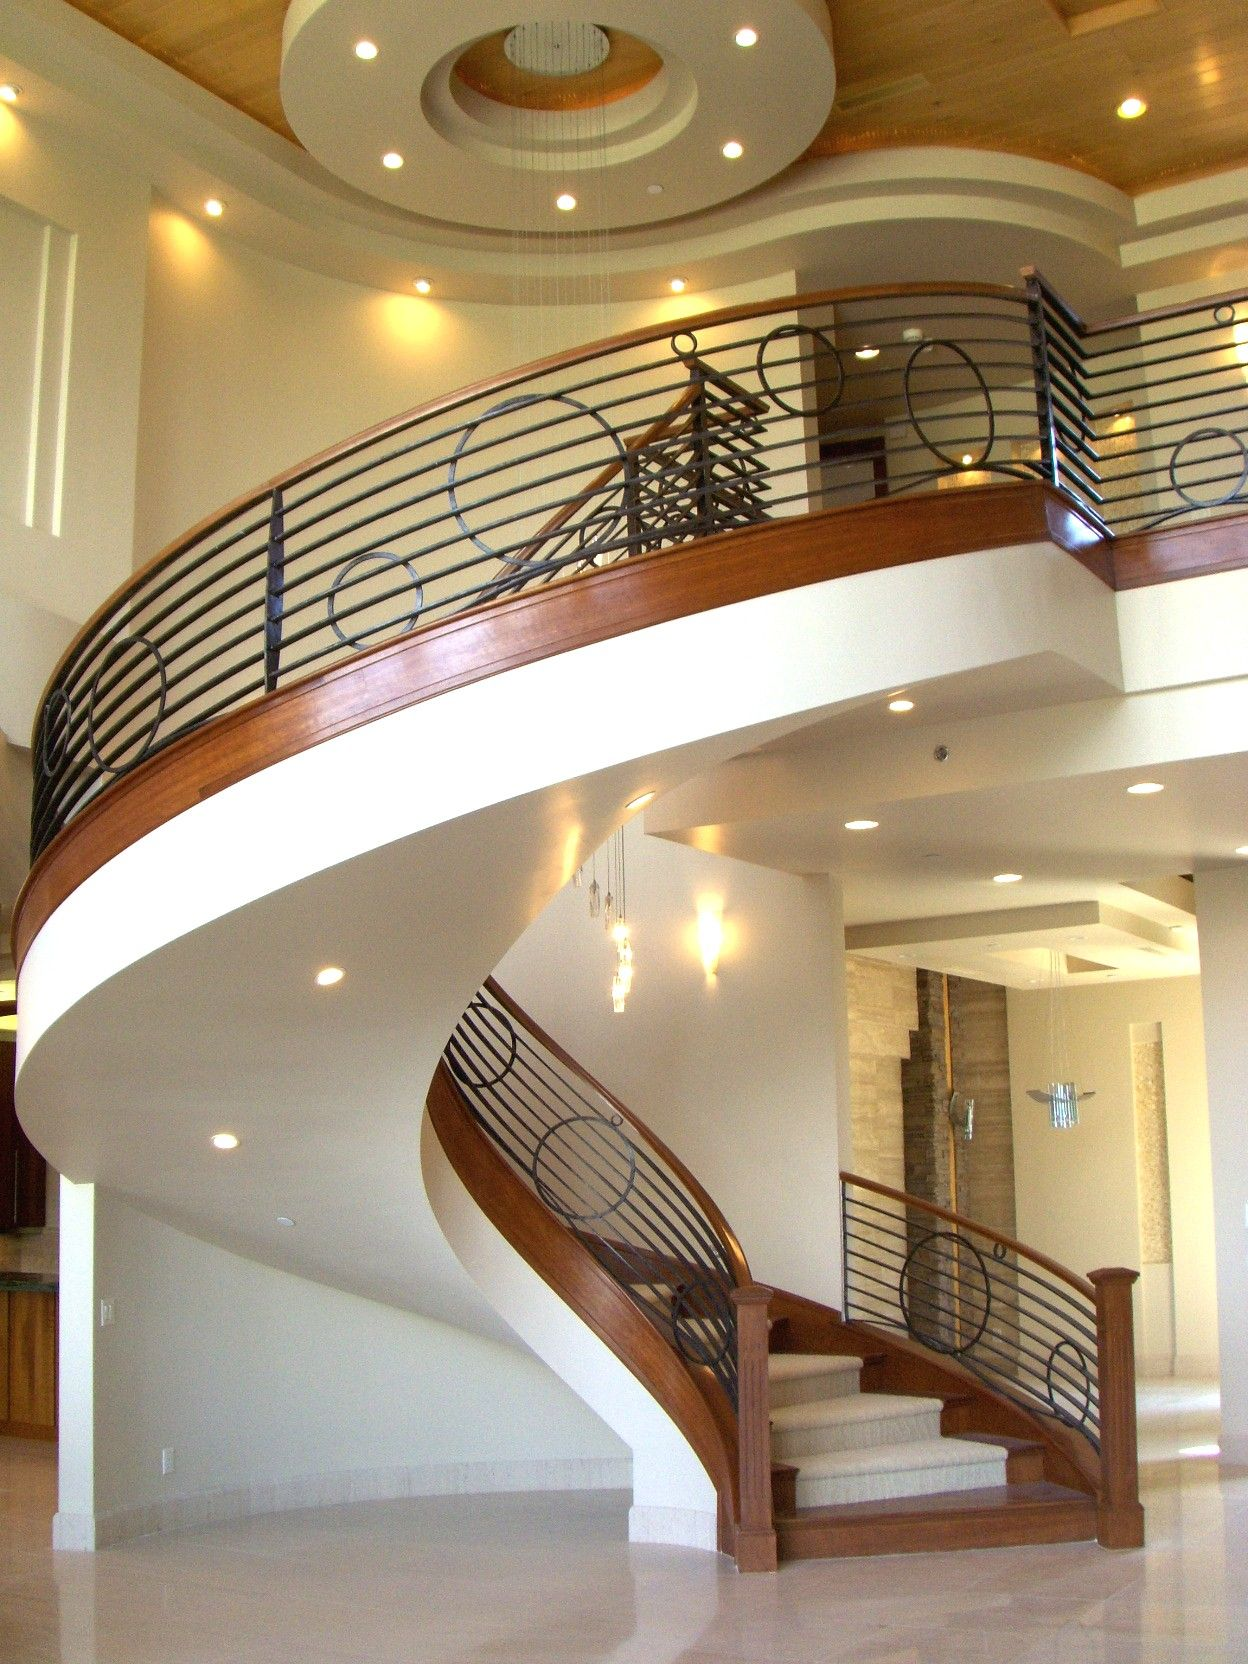 luxurious and splendid elegant stairs design. Charming Circular Style Staircase Design With Black Iron Banister Rails As  Well White Wall Painted Also Modern Ceiling Lighting Interior House Decorating Luxury Foreclosures In Las Vegas staircase Staircases